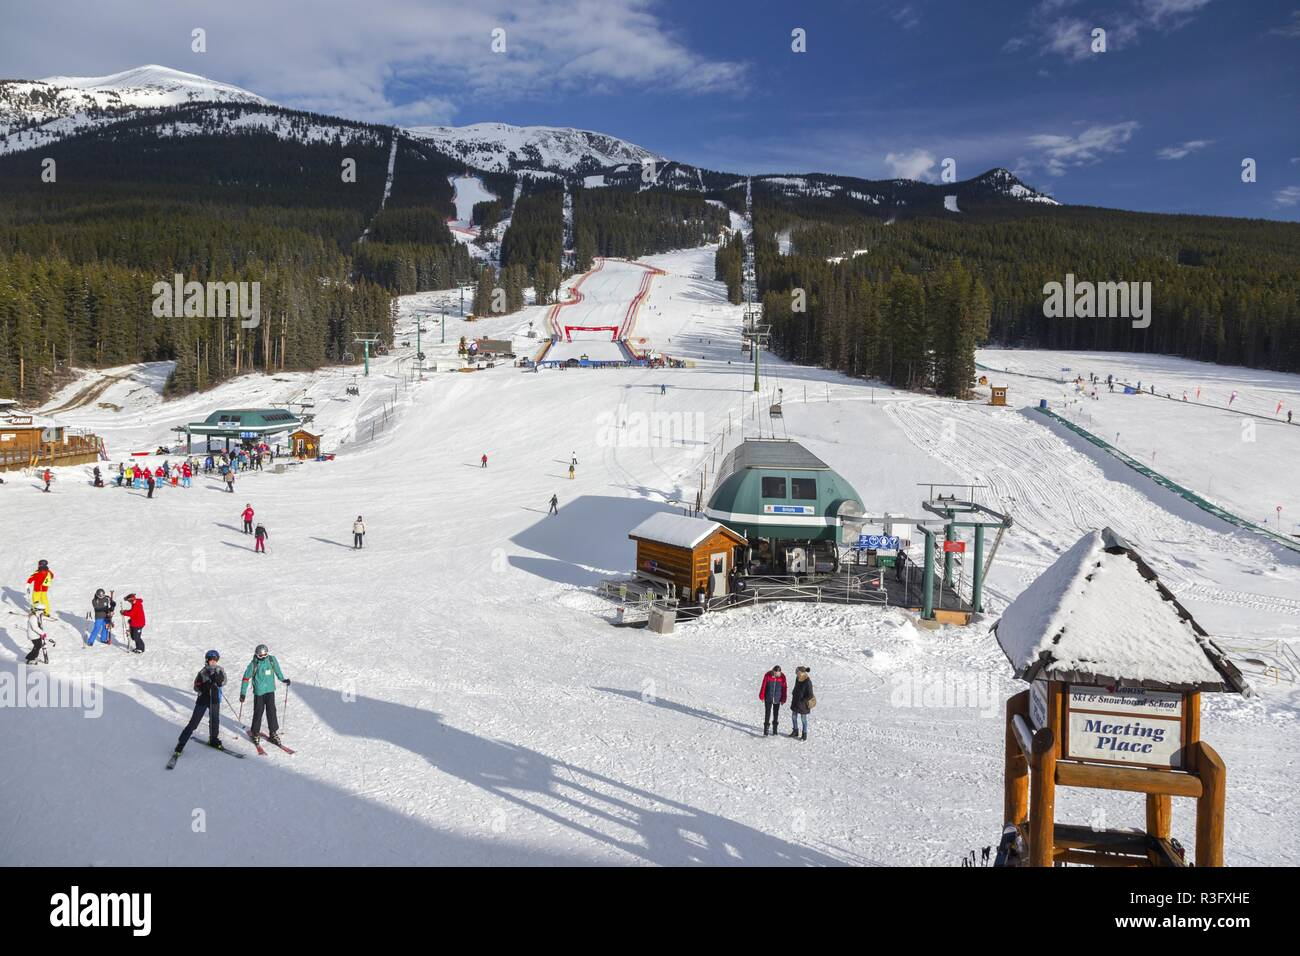 skiers-people-at-snow-slopes-of-lake-lou